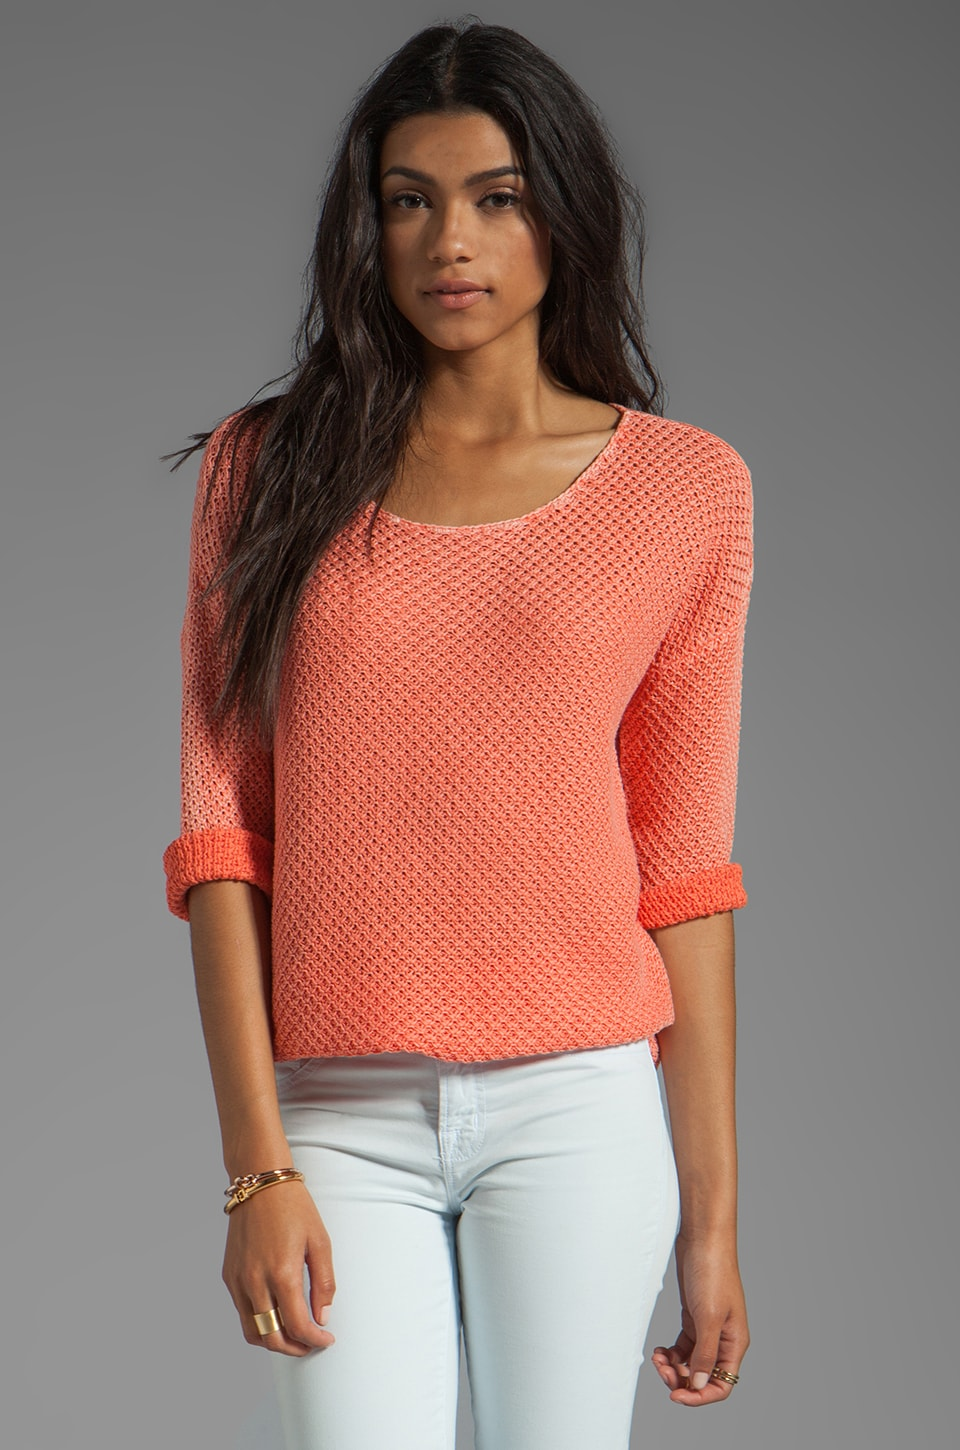 Soft Joie Dhana B Pullover Sweater in Fresh Salmon